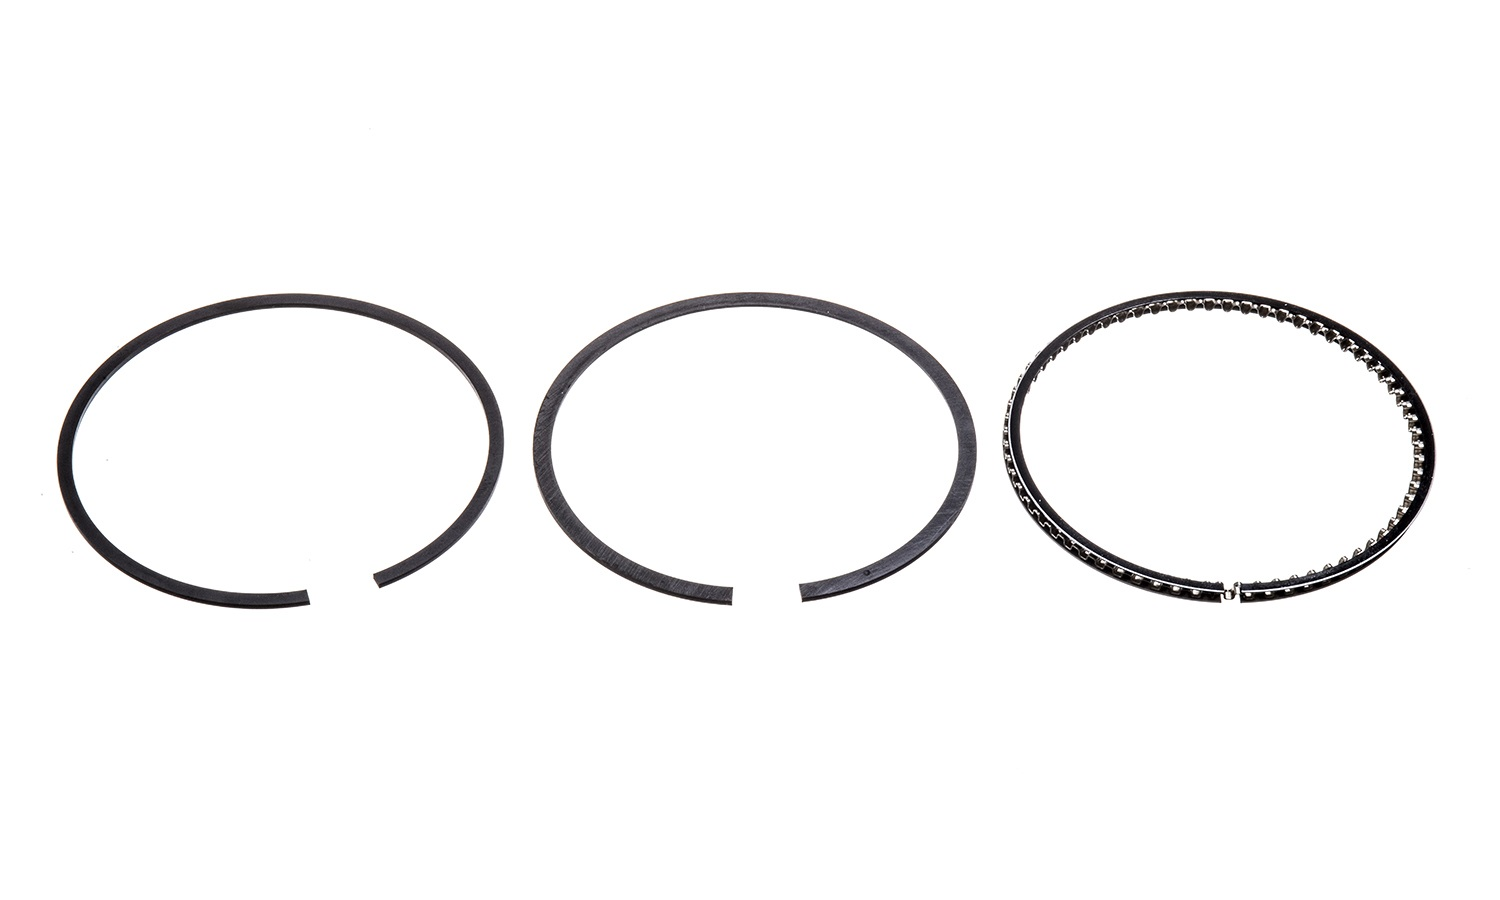 Hastings 10 Cyl Ring Set